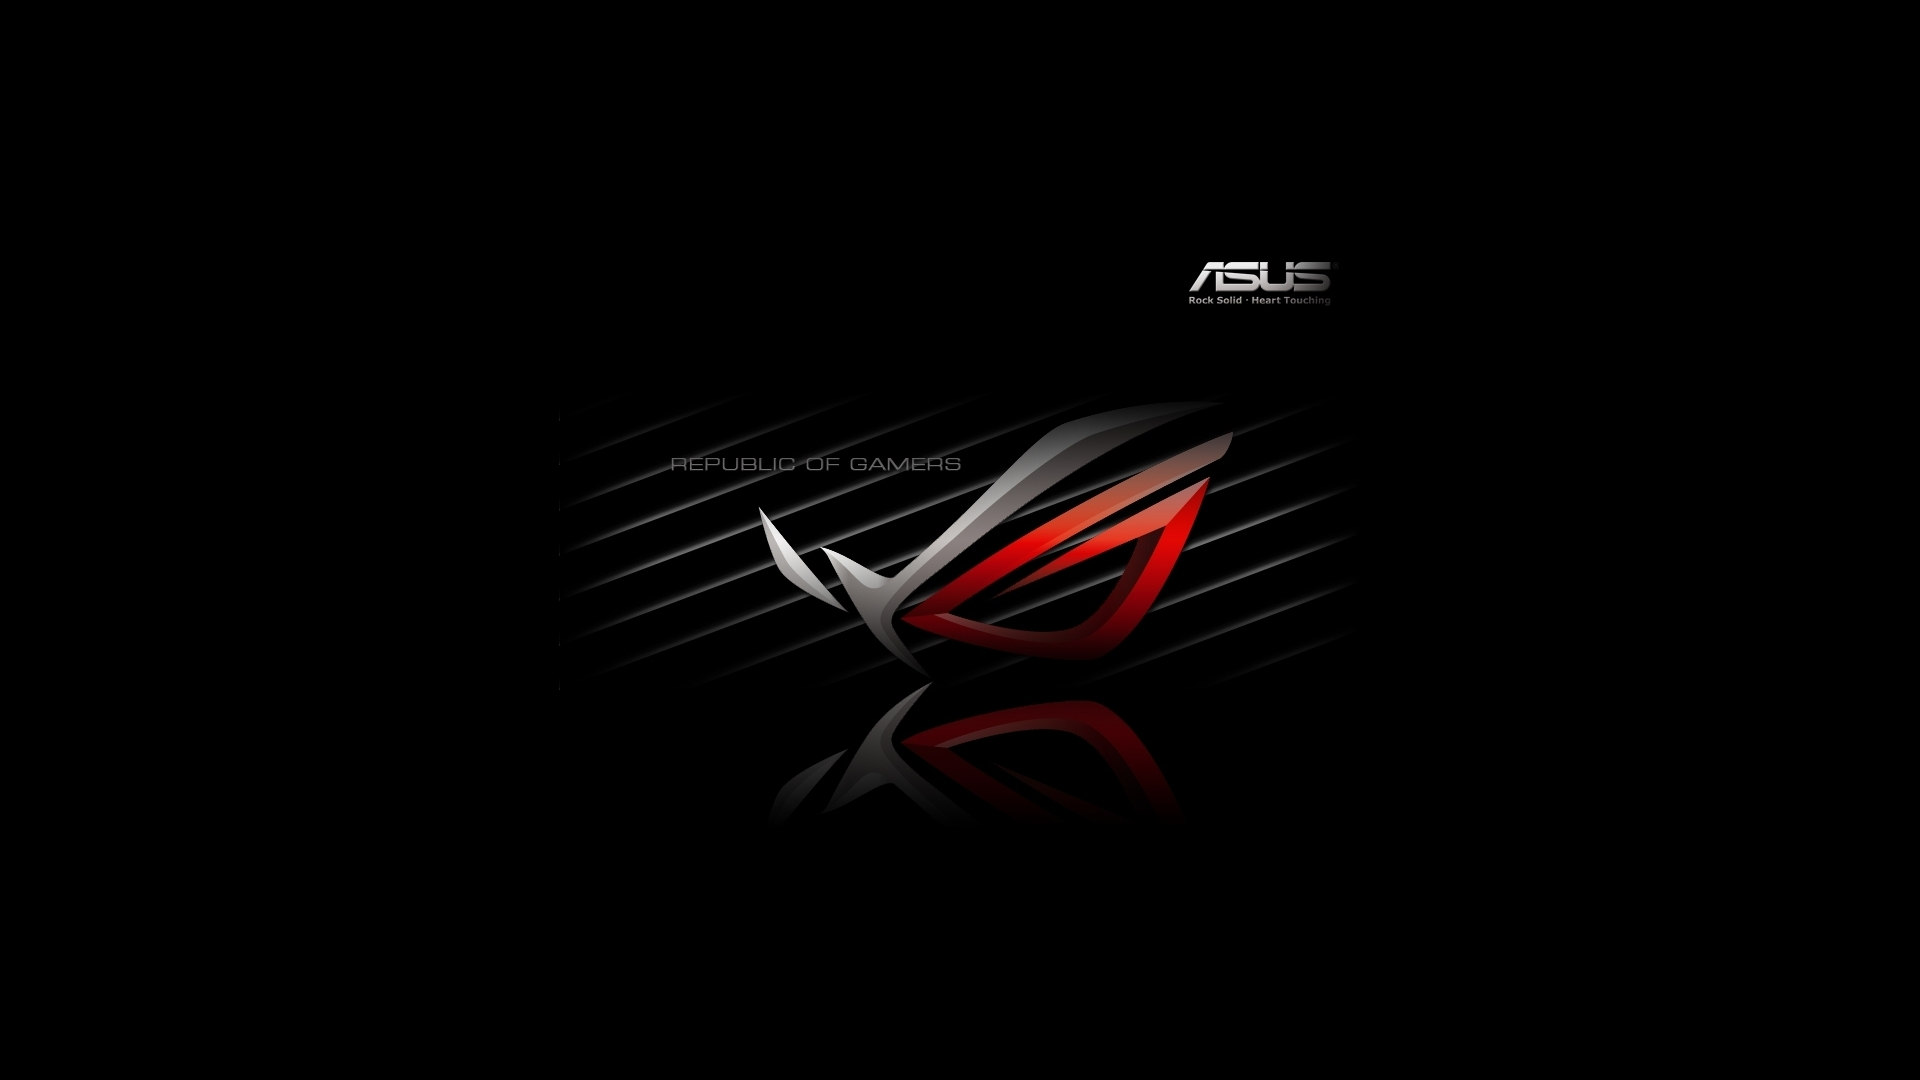 Asus Hd Wallpaper Asus HD Wallpapers 37 Download 1920x1080